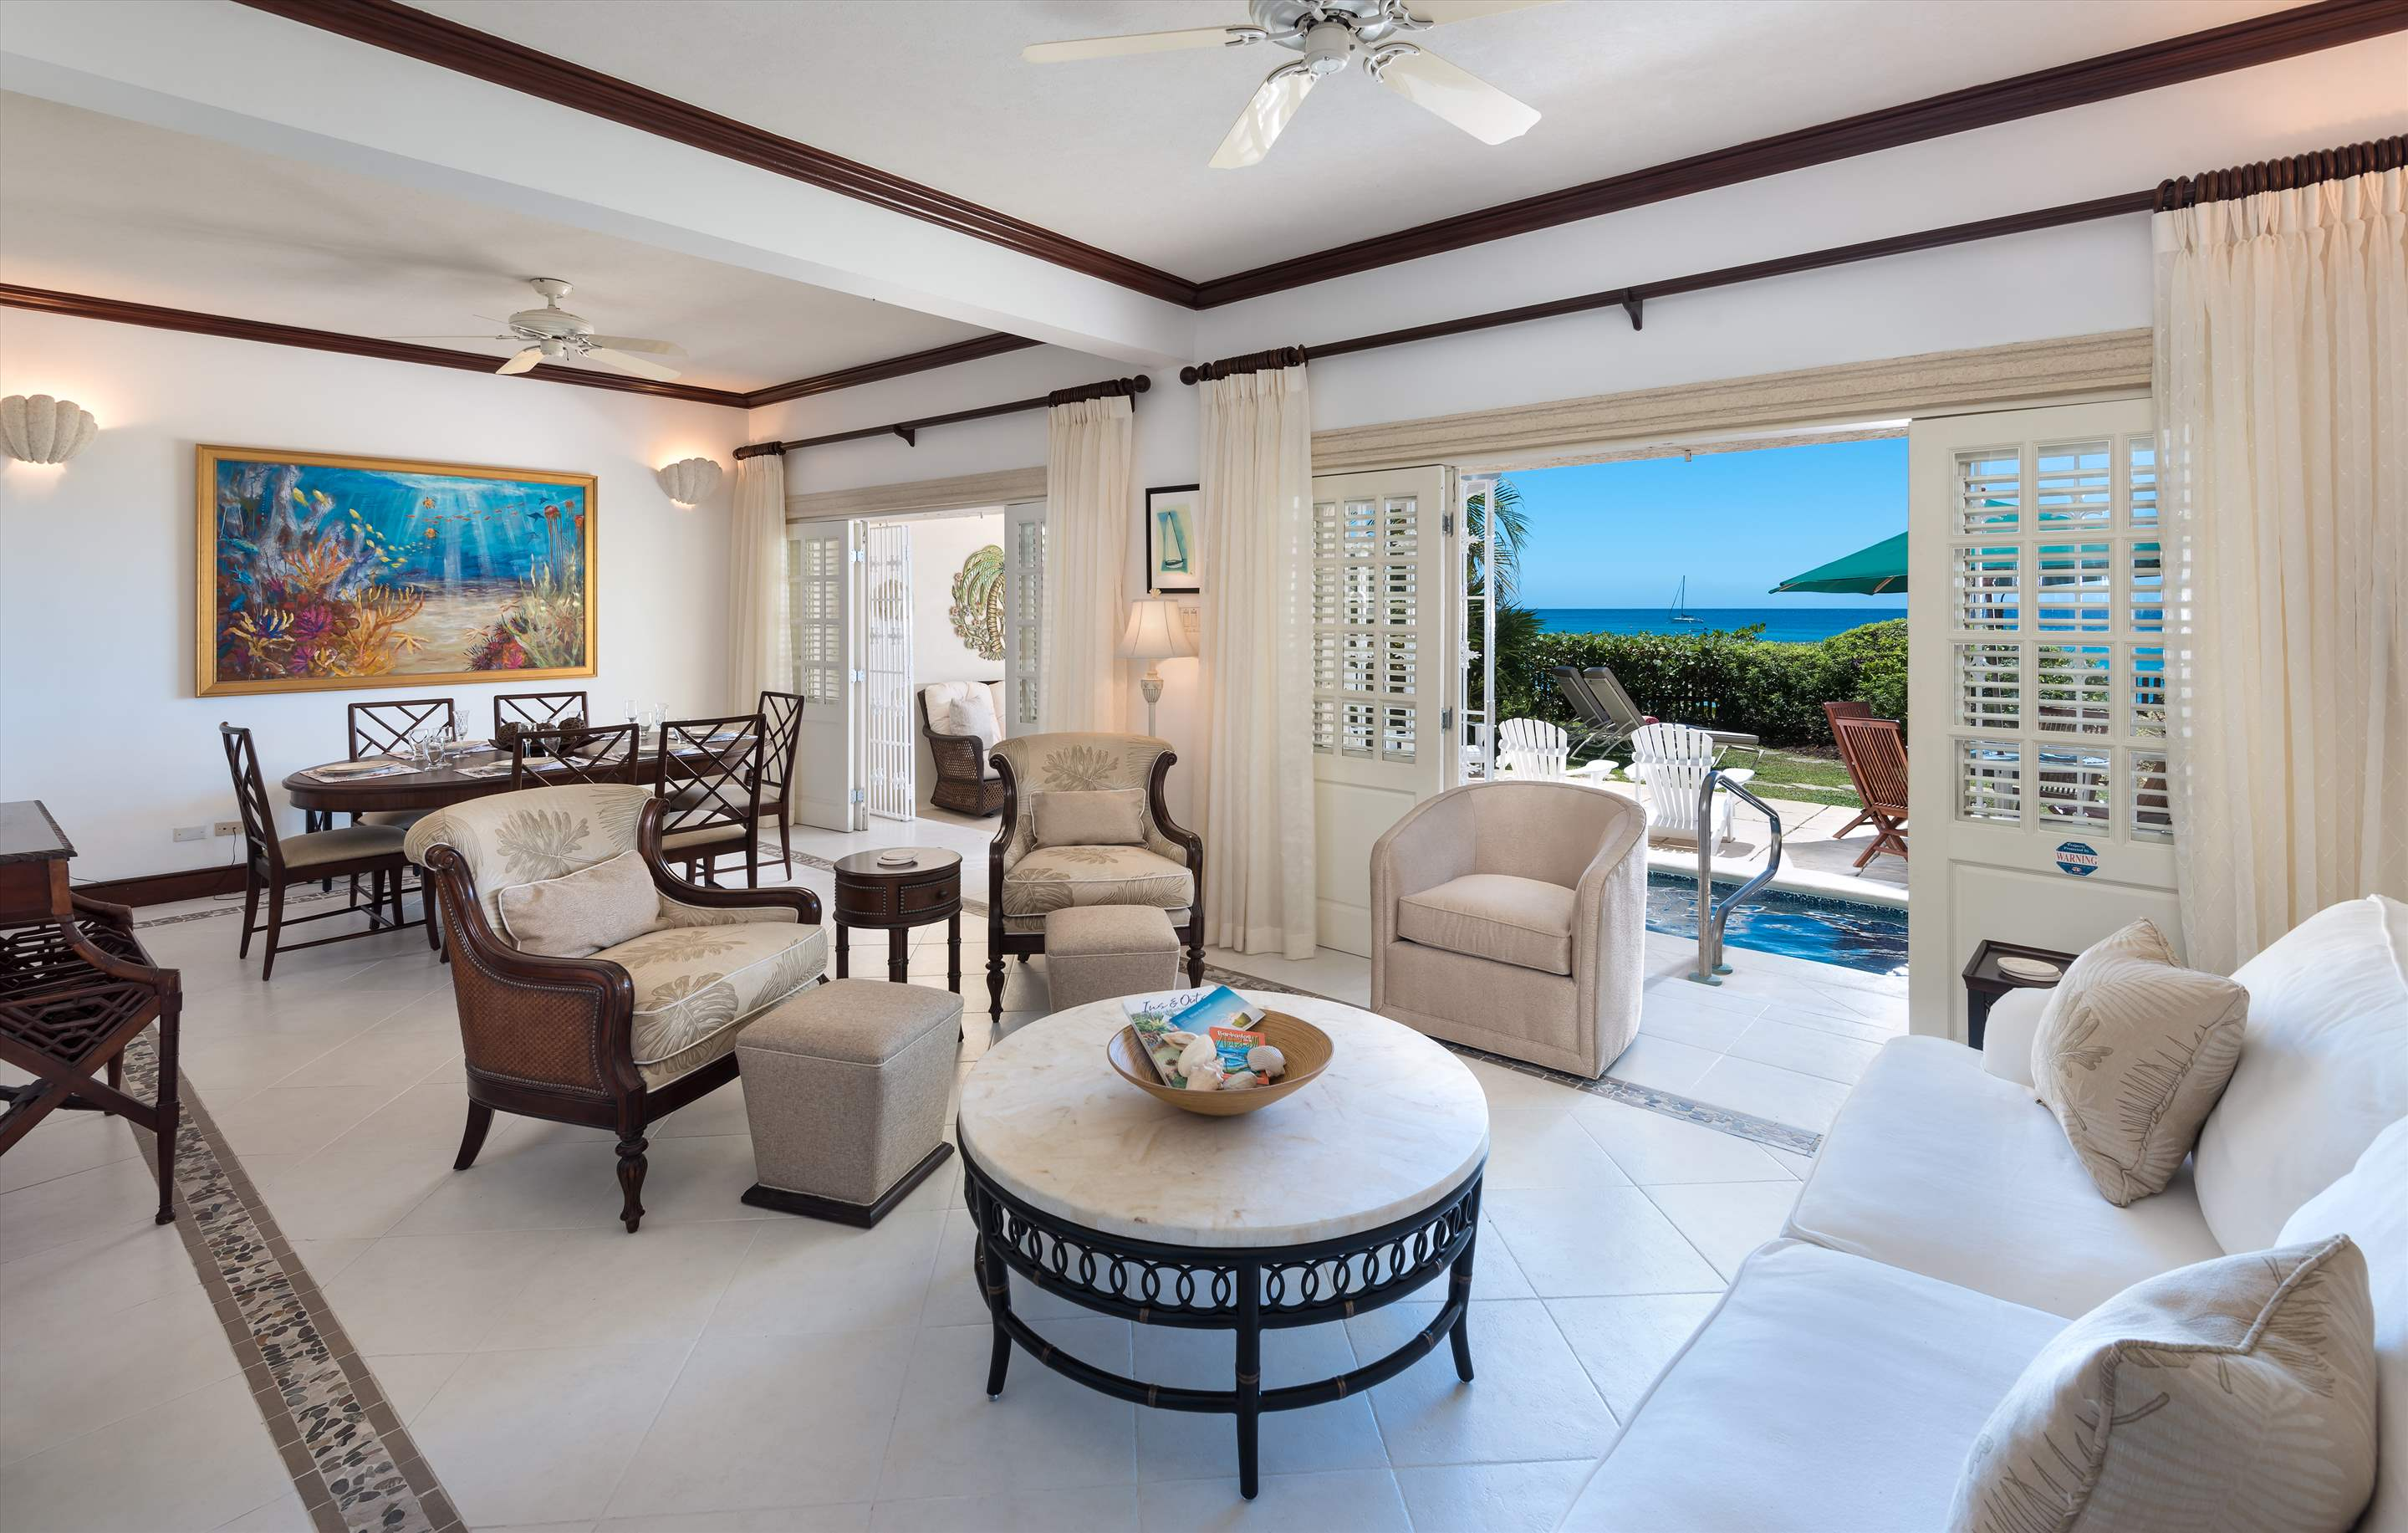 Fathom's End, 3 bedroom villa in St. James & West Coast, Barbados Photo #3